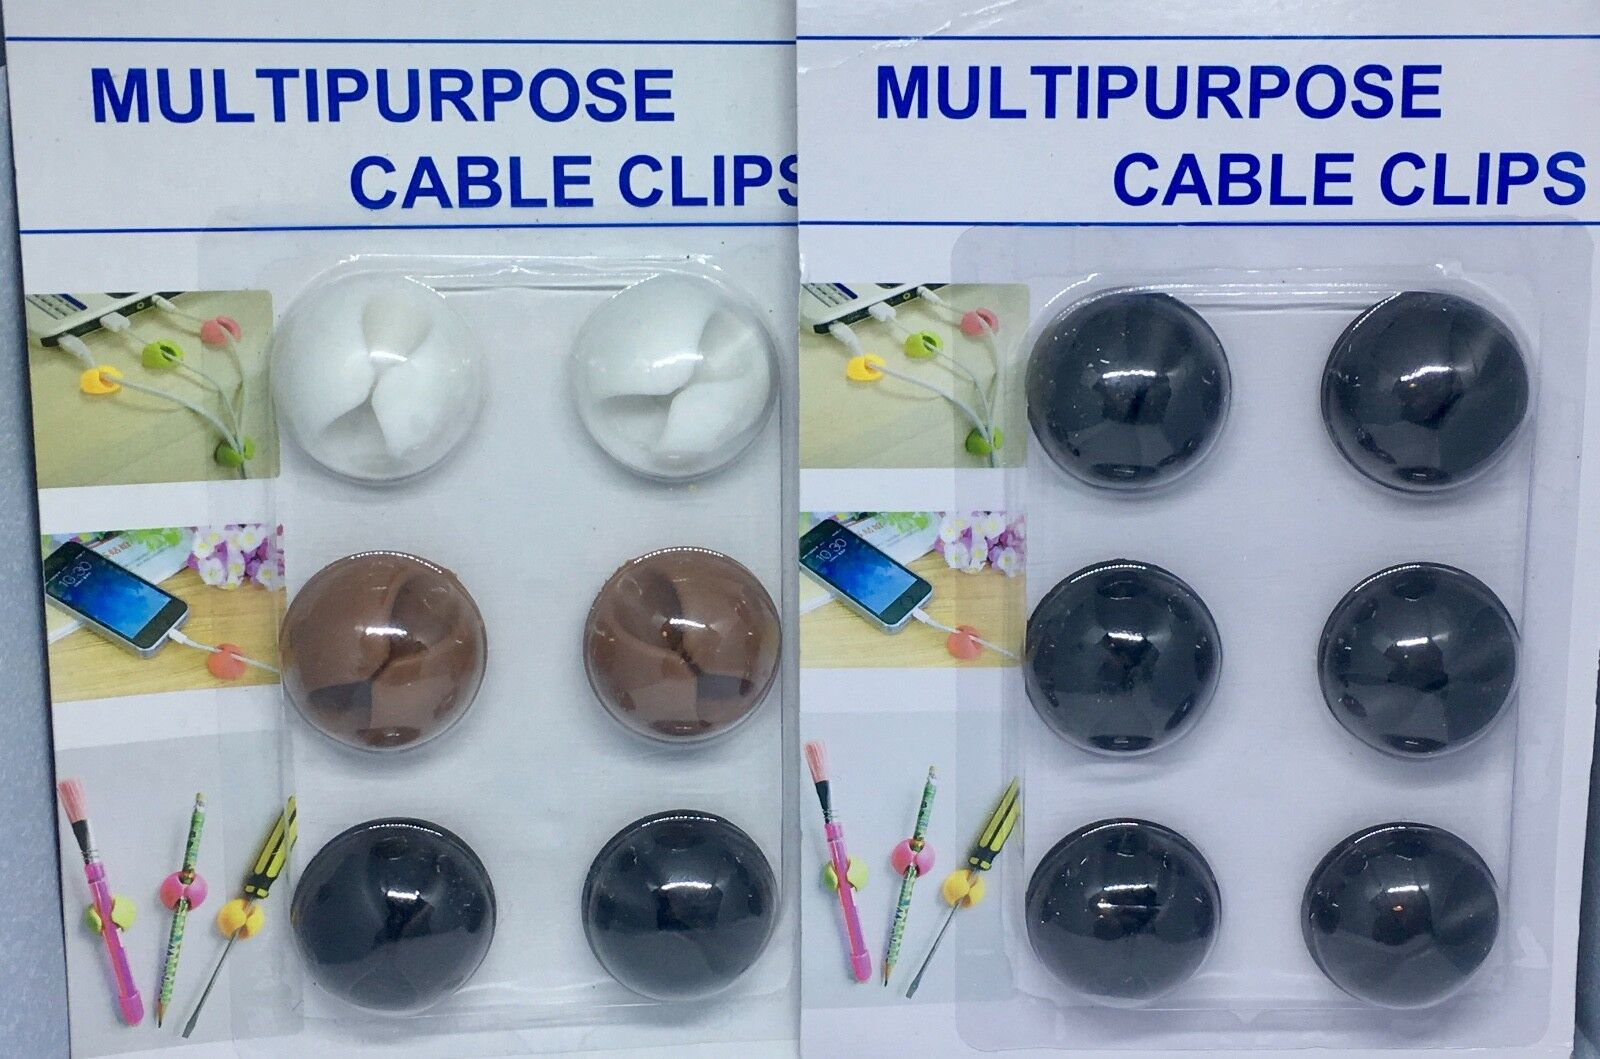 6 X Multipurpose Smart Wire Cord Cable Clips Drop Organizer Ties Holder Cable NE